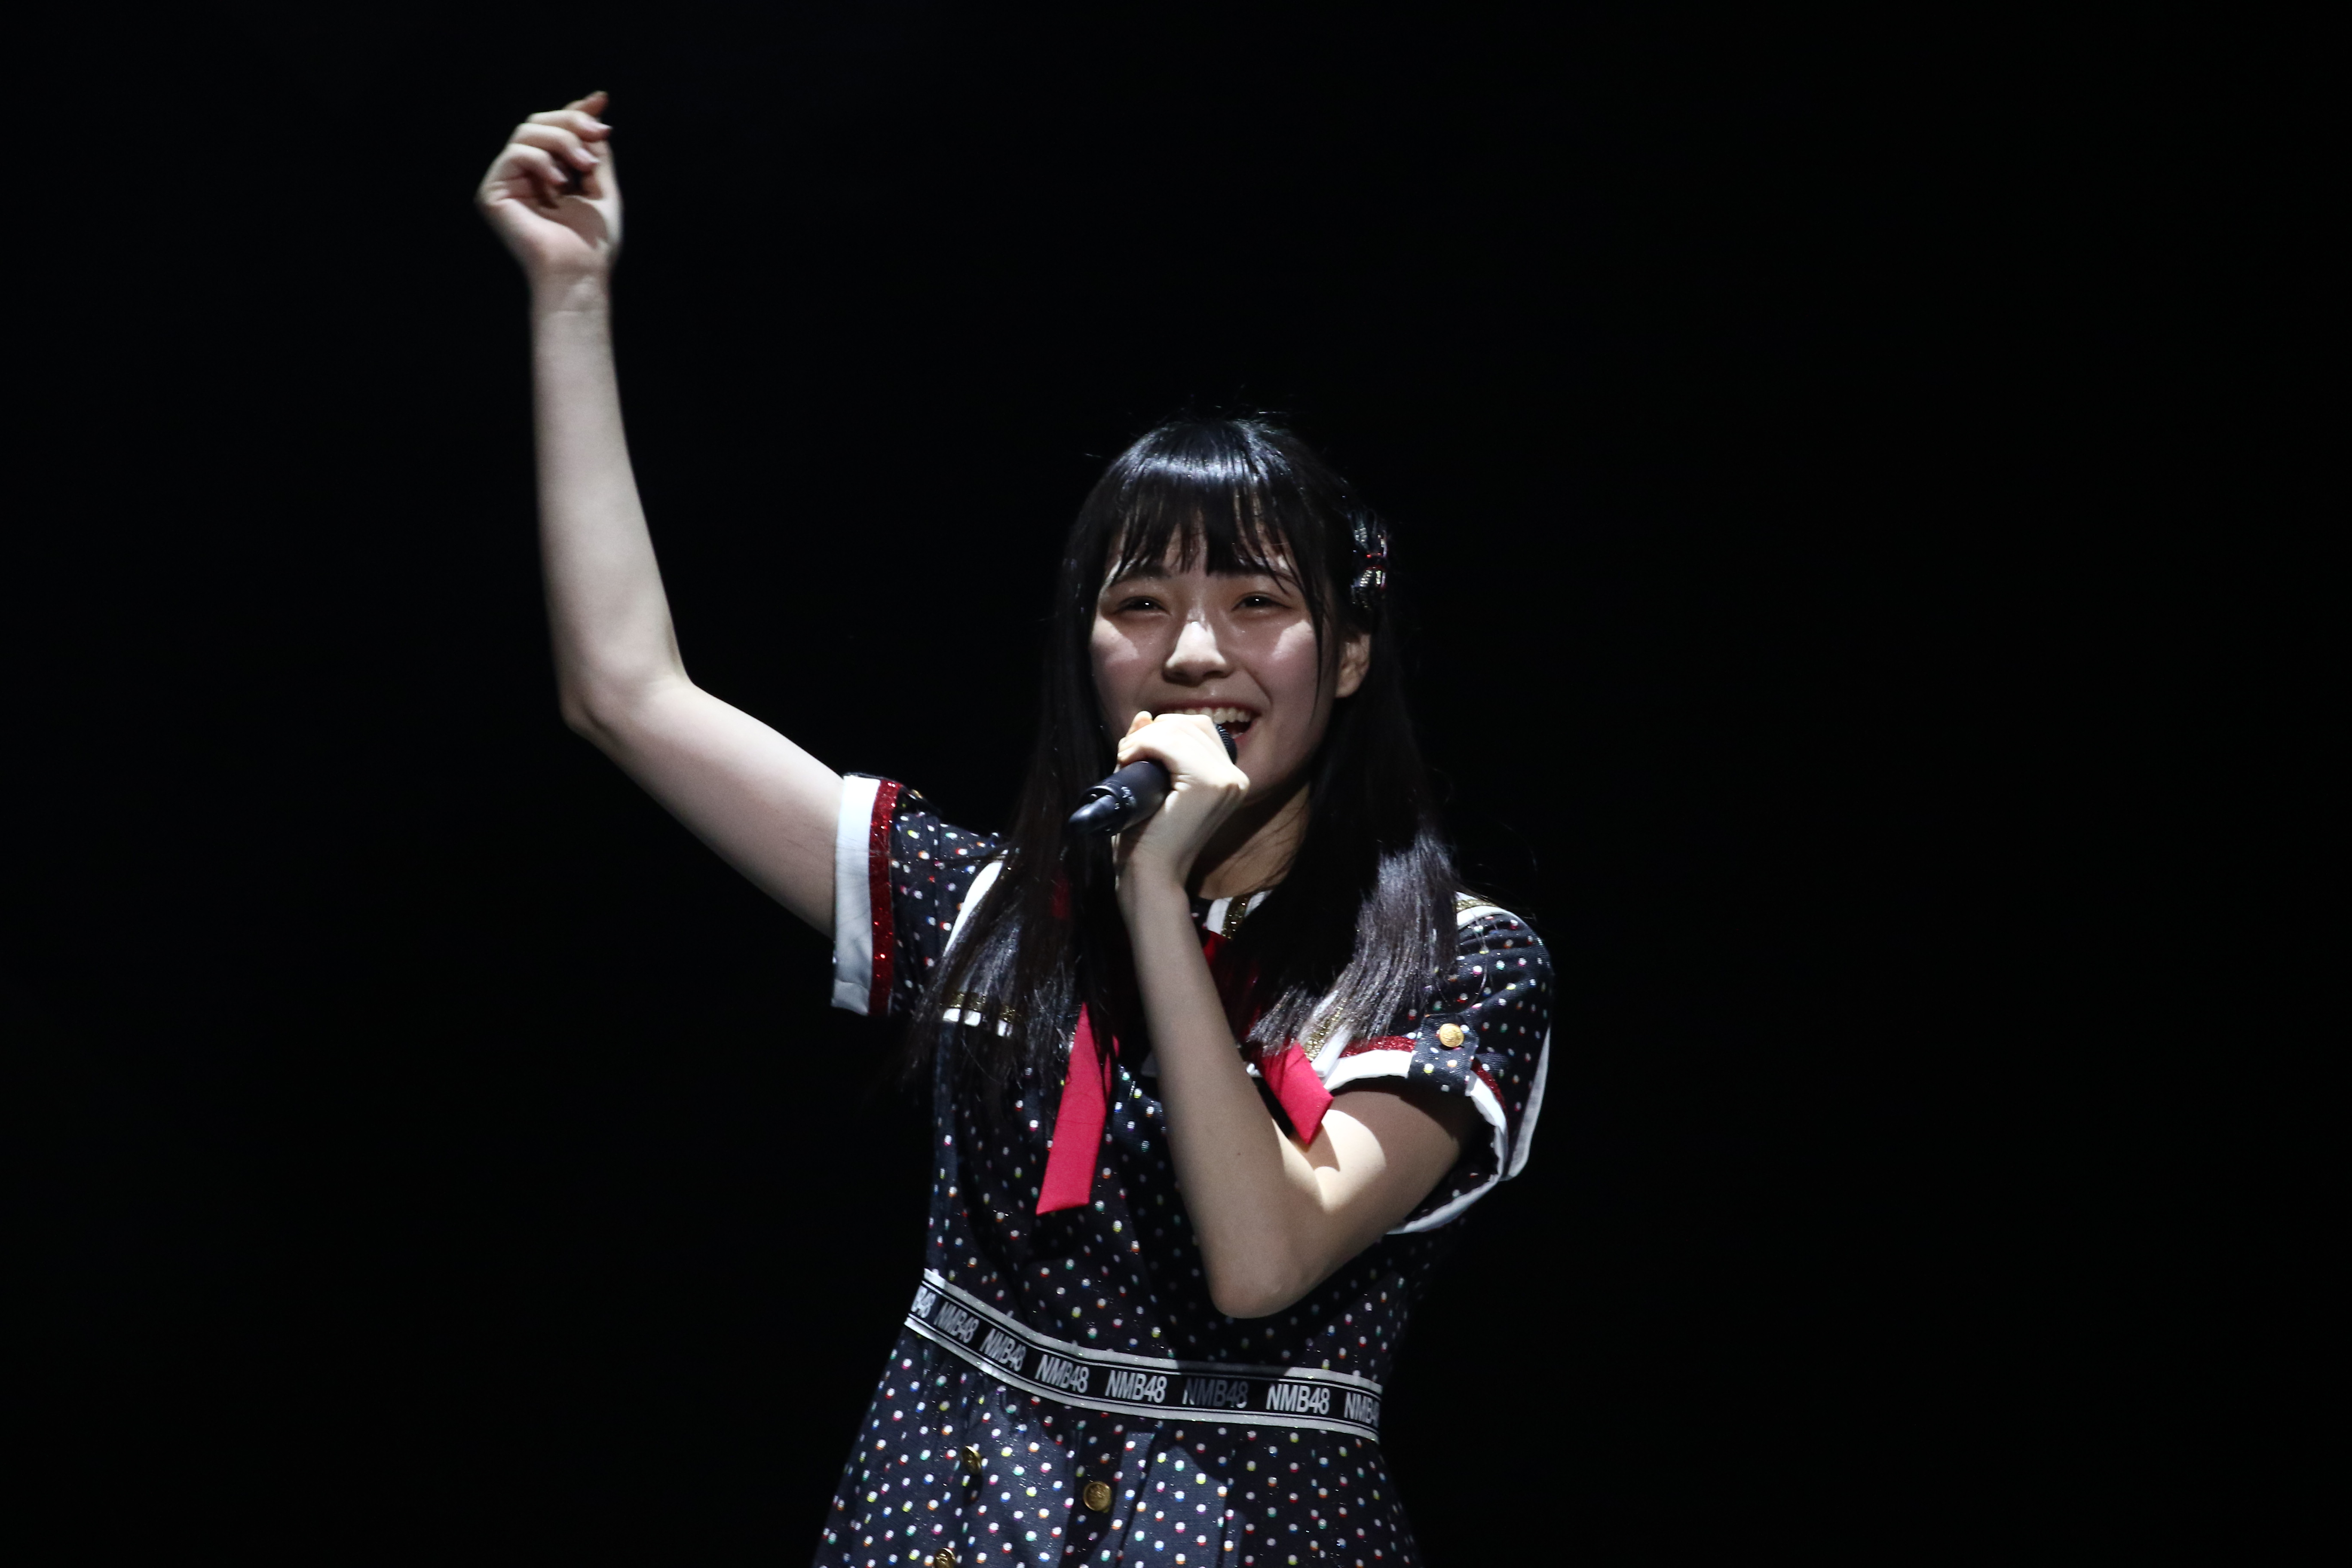 NMB48 LIVE TOUR 2018 名古屋 チームM公演-212